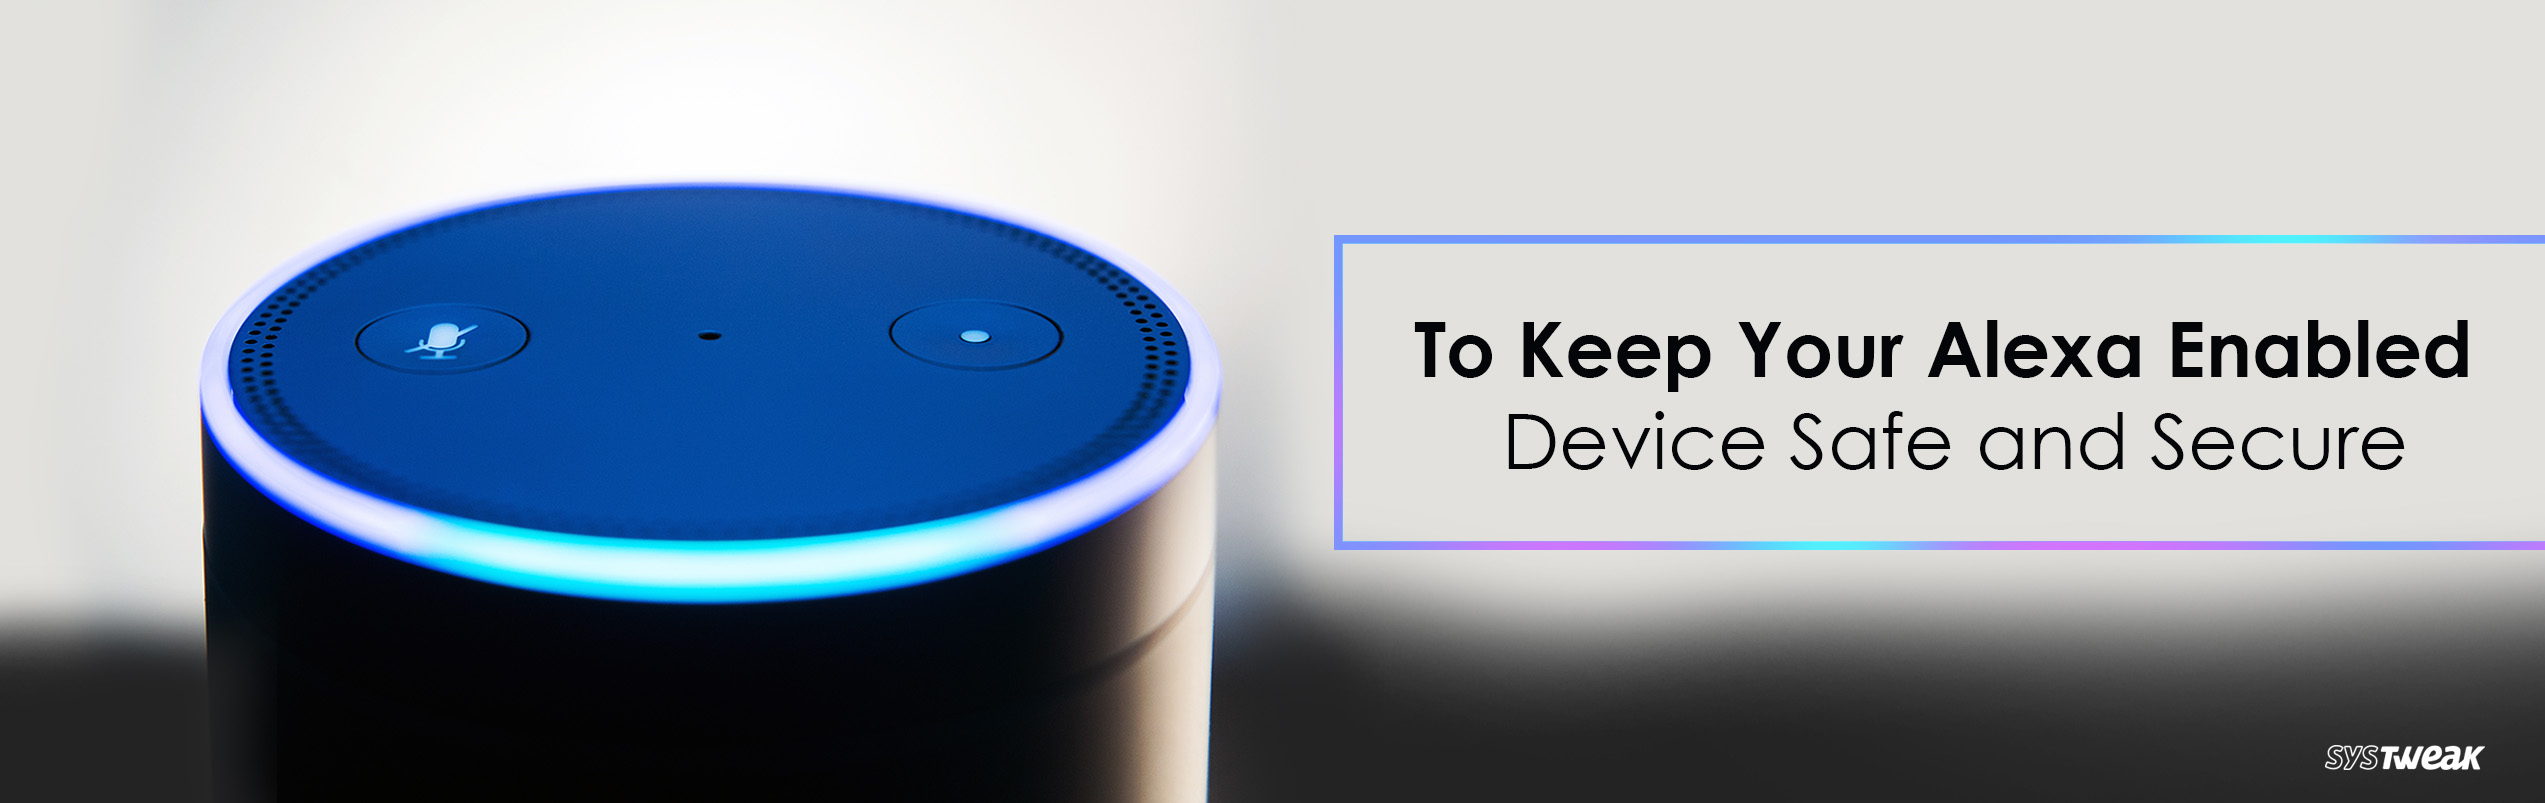 5 Useful Ways To Keep Your Alexa Safe & Secure